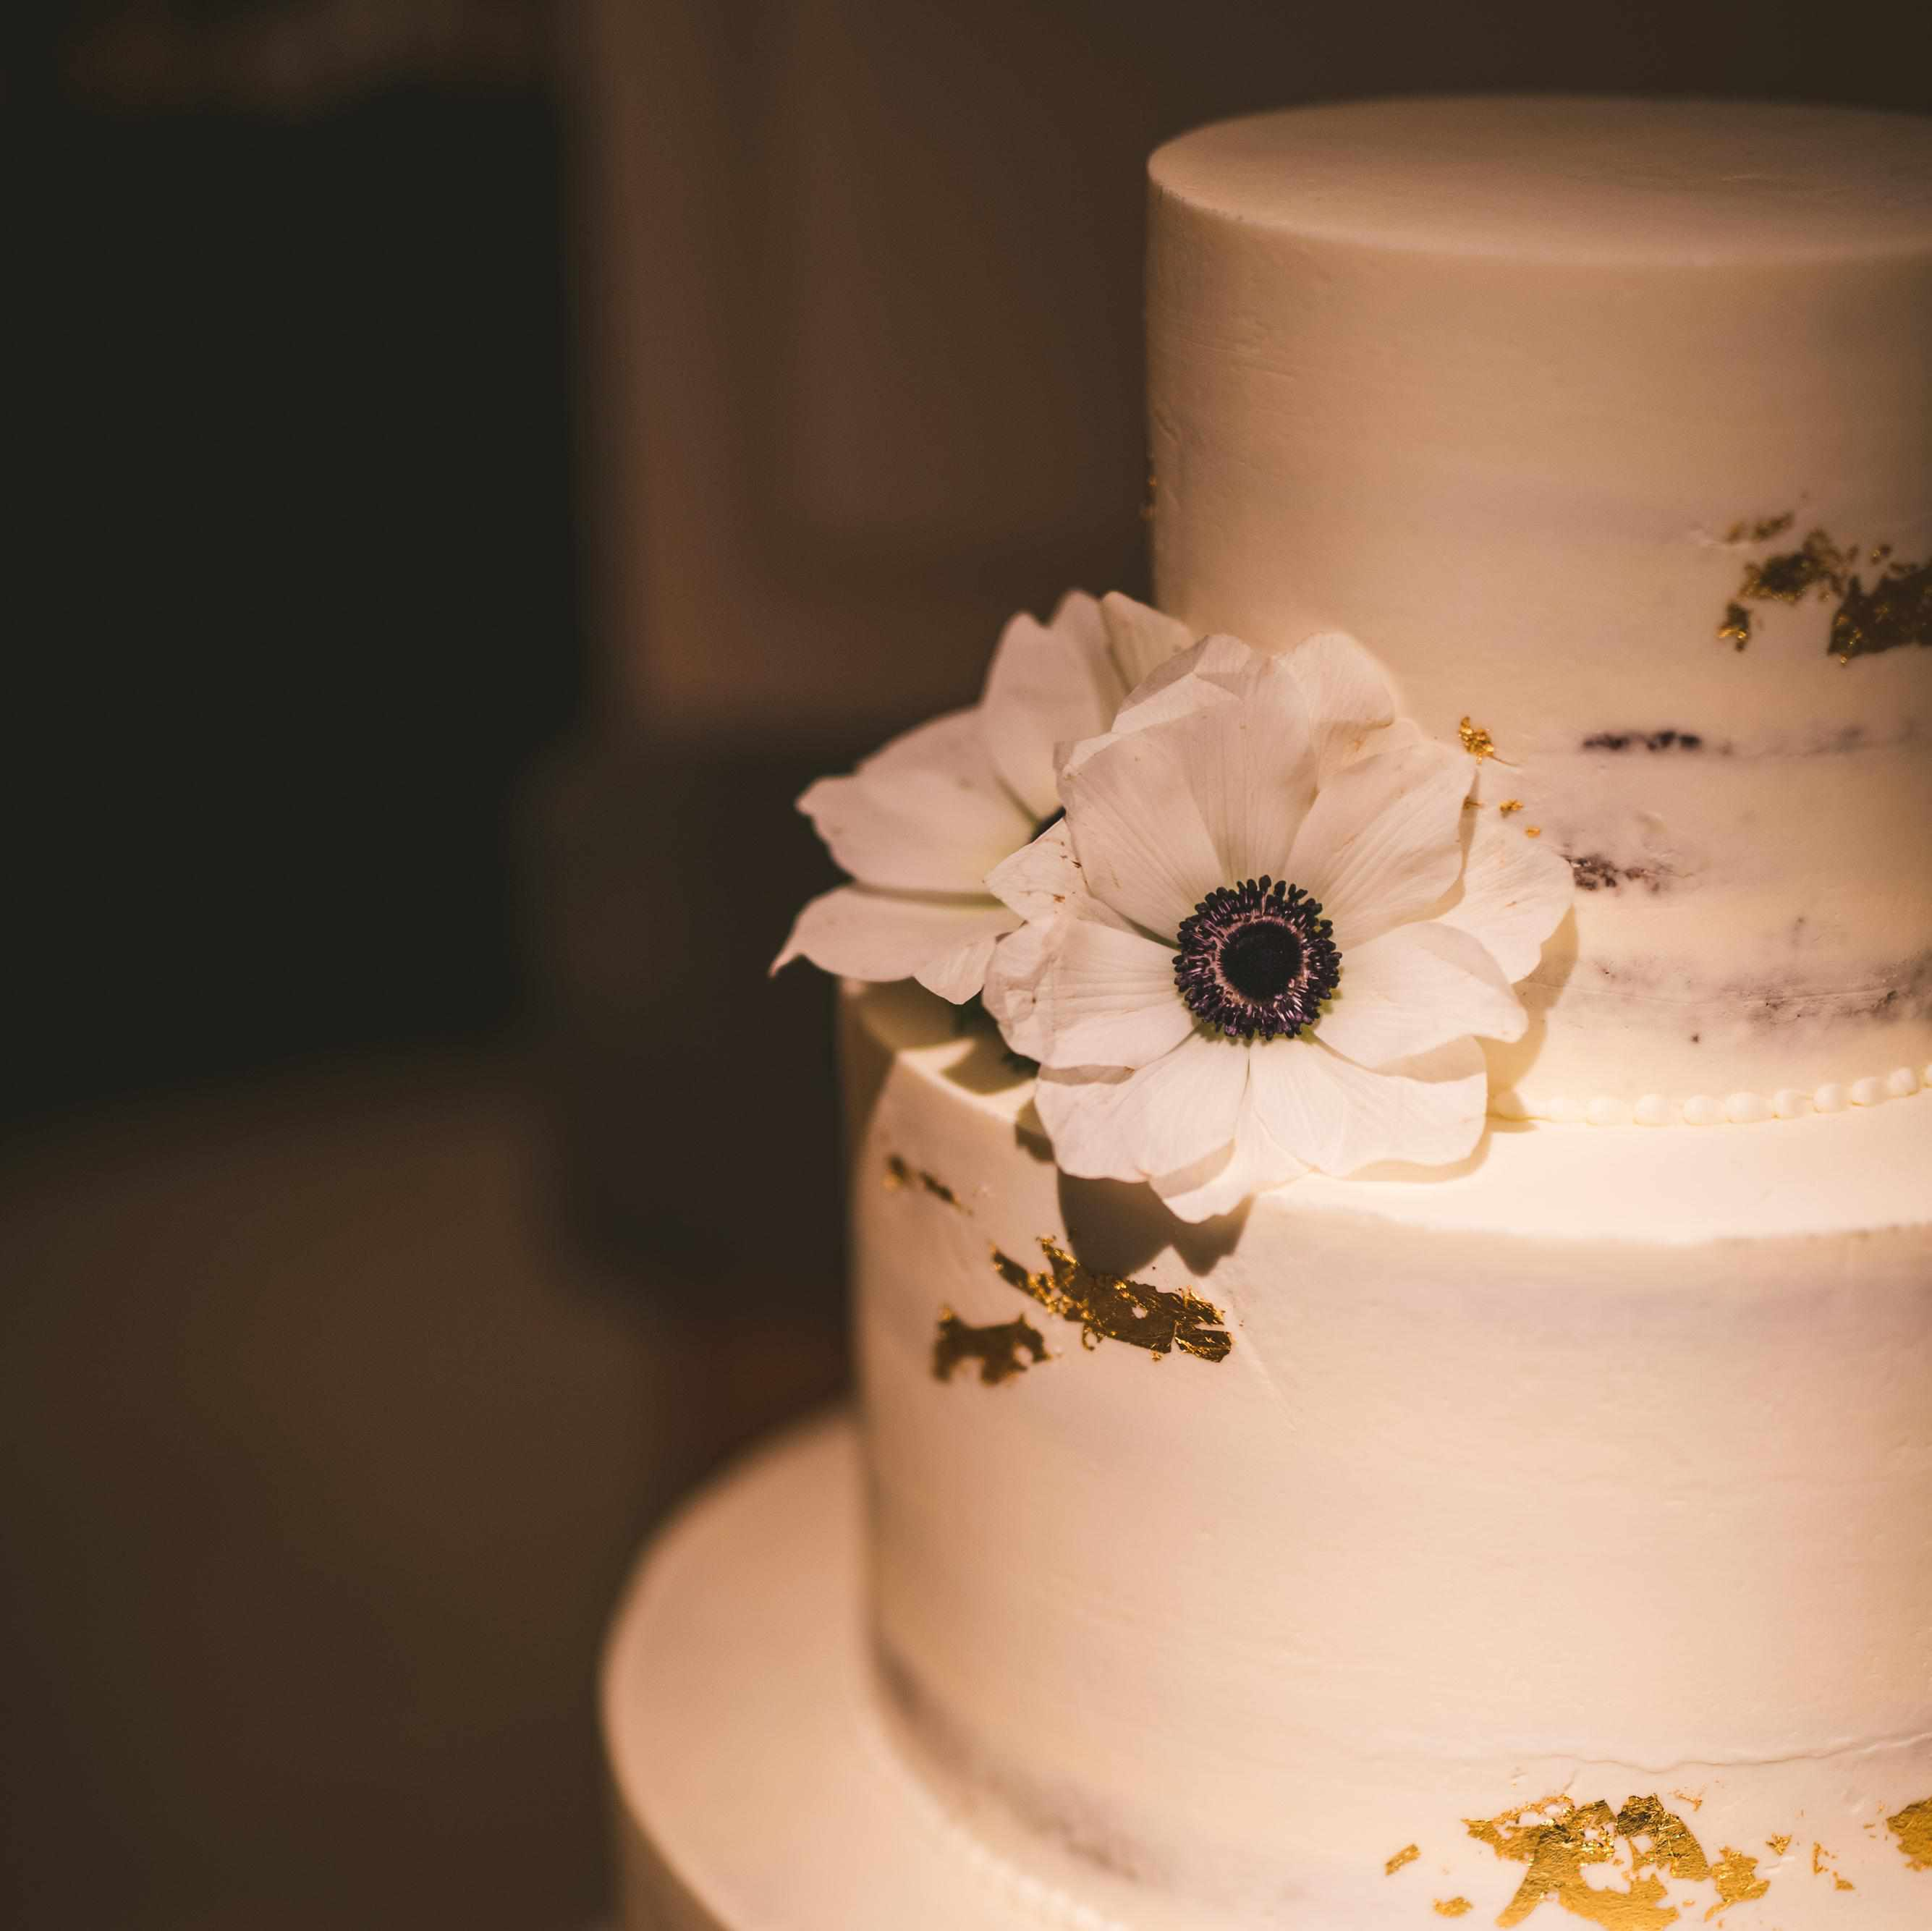 Sam Wedding Cake.4 Wedding Cake Secrets Only The Pros Know